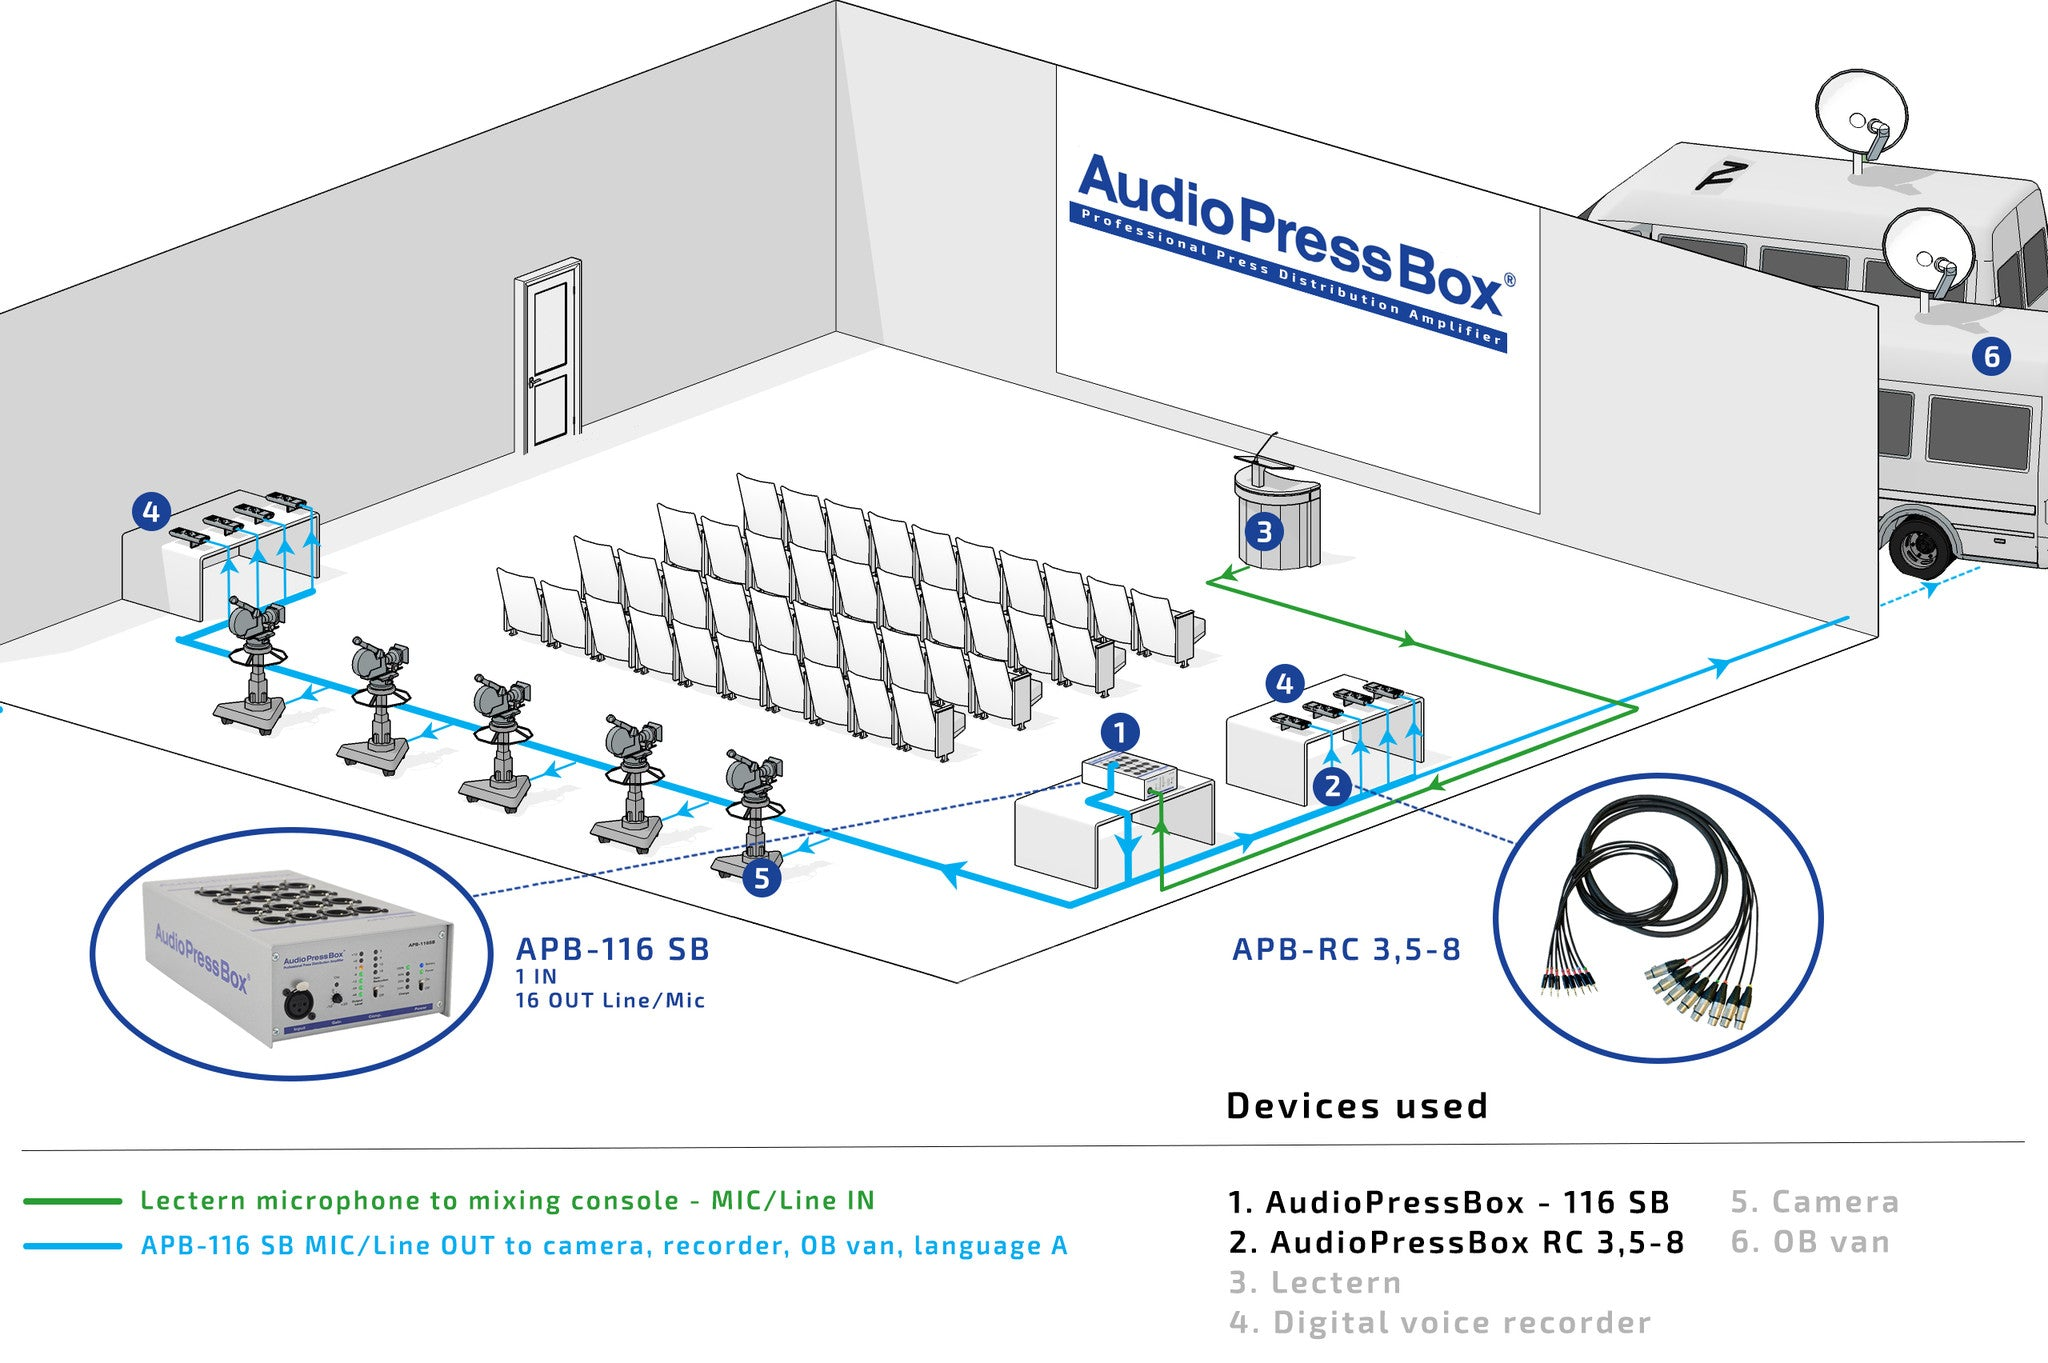 AudioPressBox, Mult Box, PressBox, Mult Box, Press Patch Box, Pressesplitter, APB-116 SB